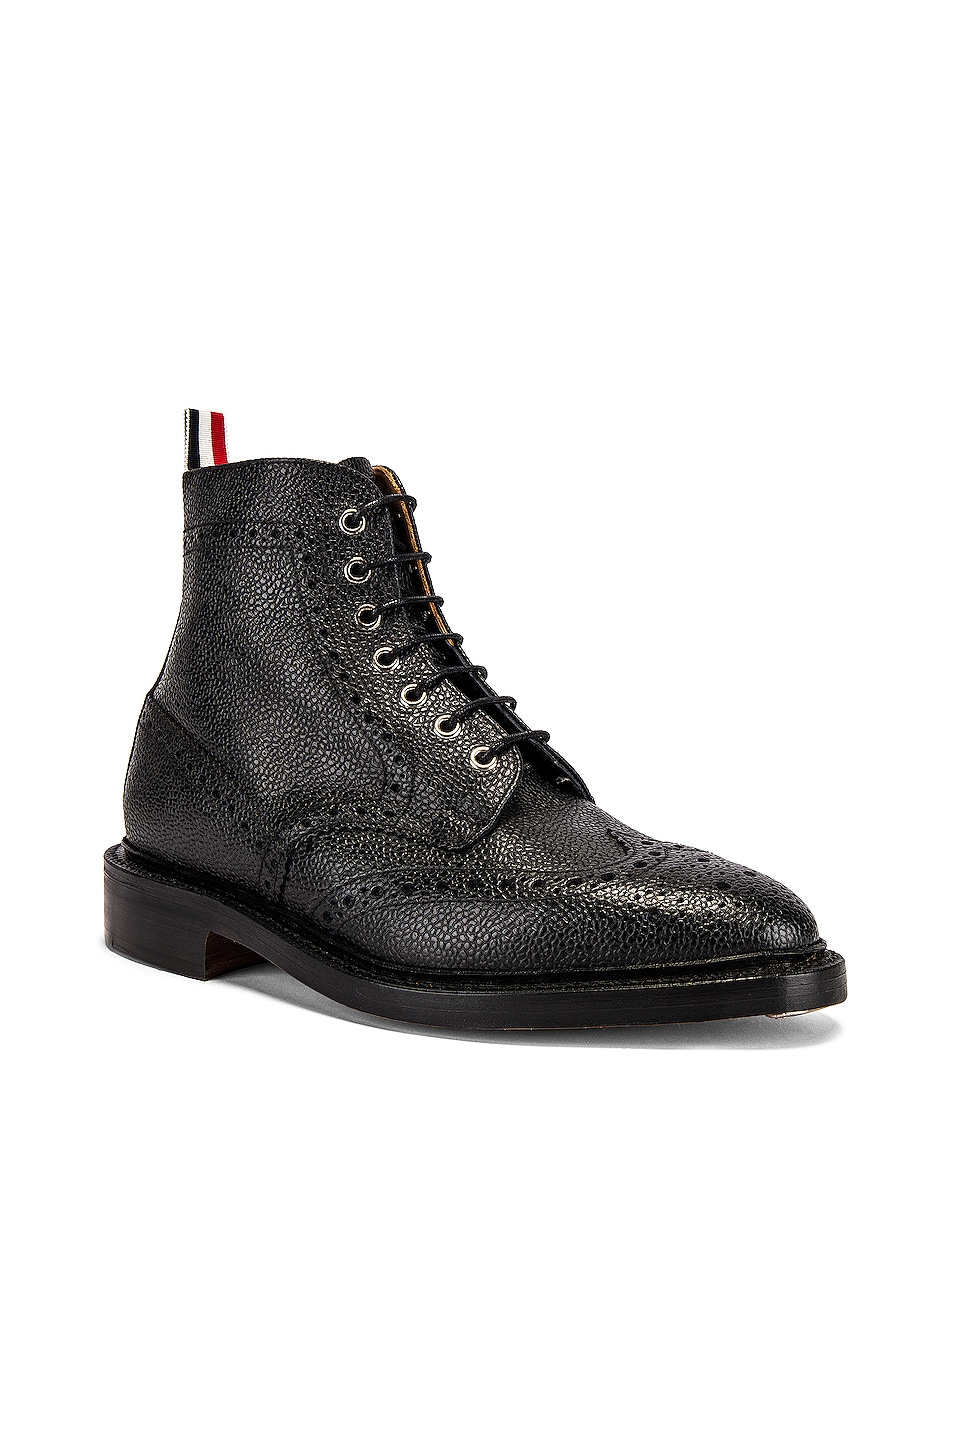 Image 2 of Thom Browne Wingtip Leather Boots in Black